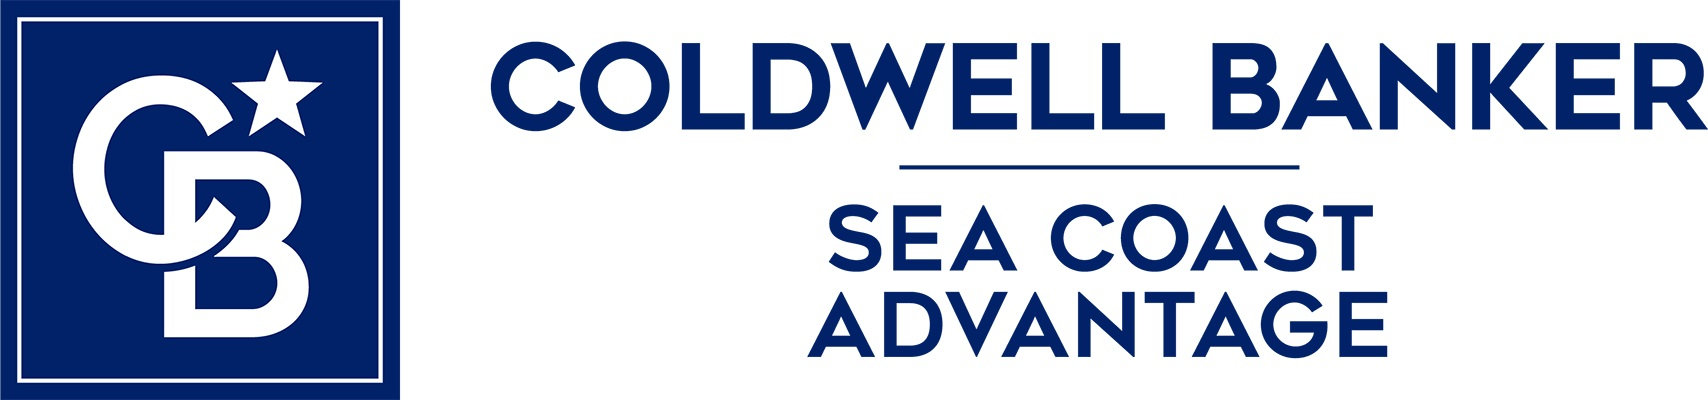 Melody McCain - Coldwell Banker Sea Coast Advantage Realty